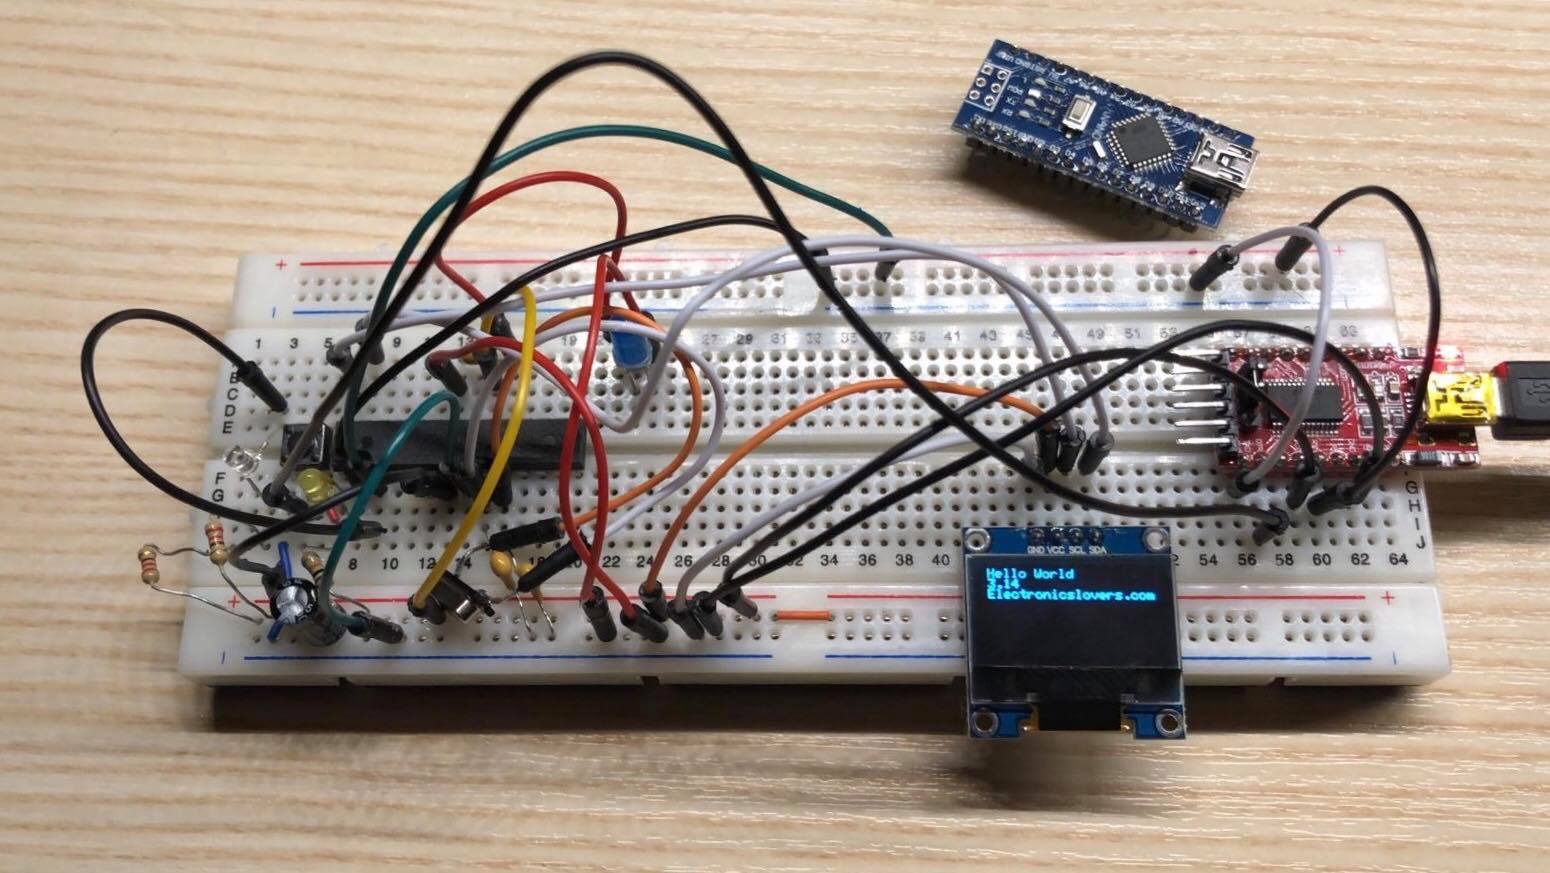 Interacting with an OLED Display via an I2C Bus system   Diy Project